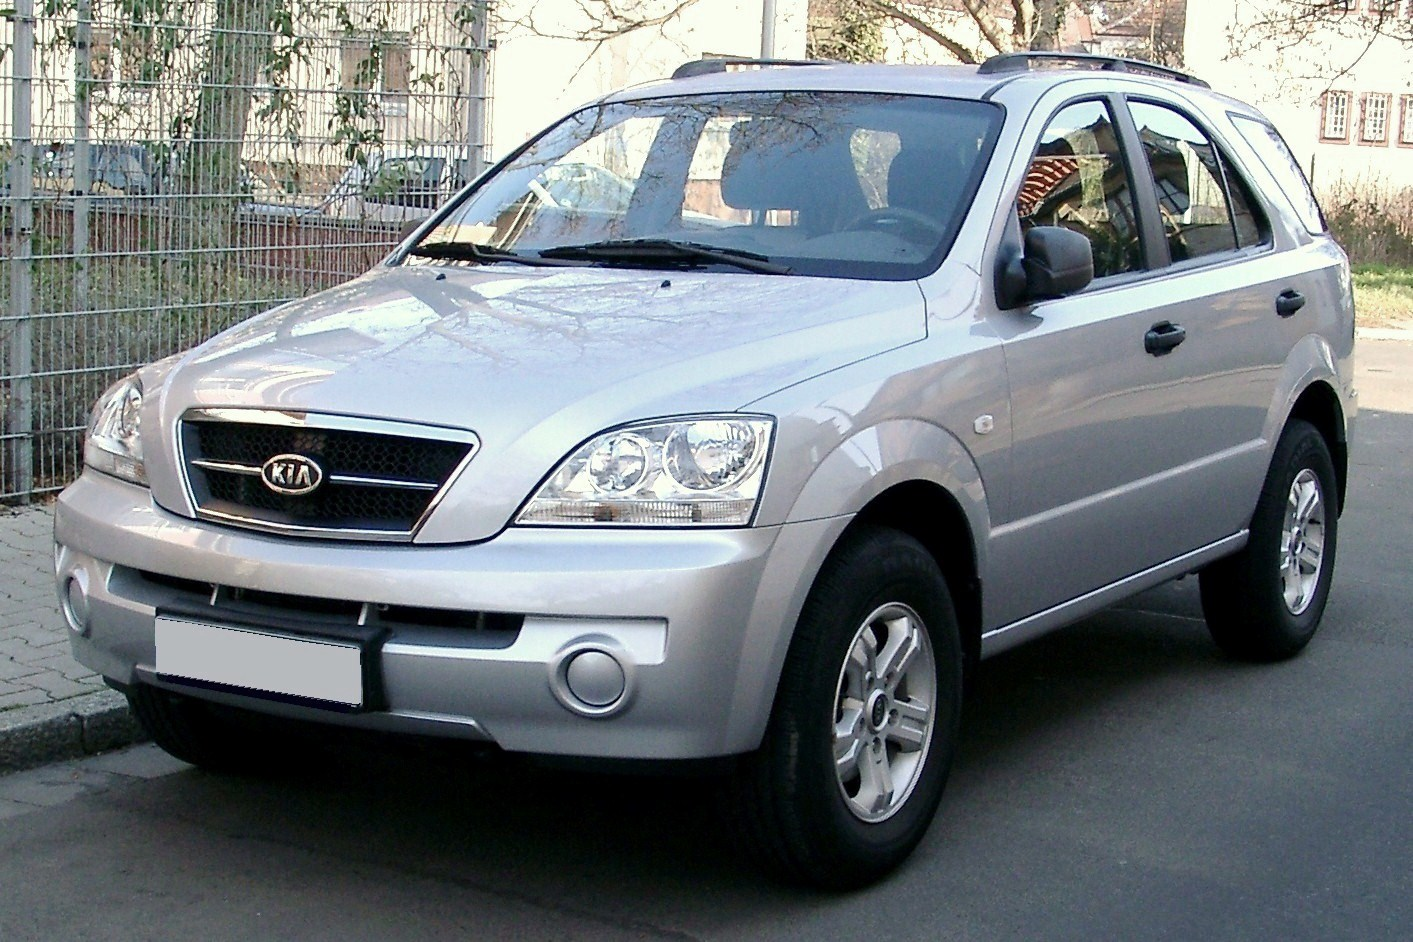 2008 kia sorento pictures information and specs auto. Black Bedroom Furniture Sets. Home Design Ideas